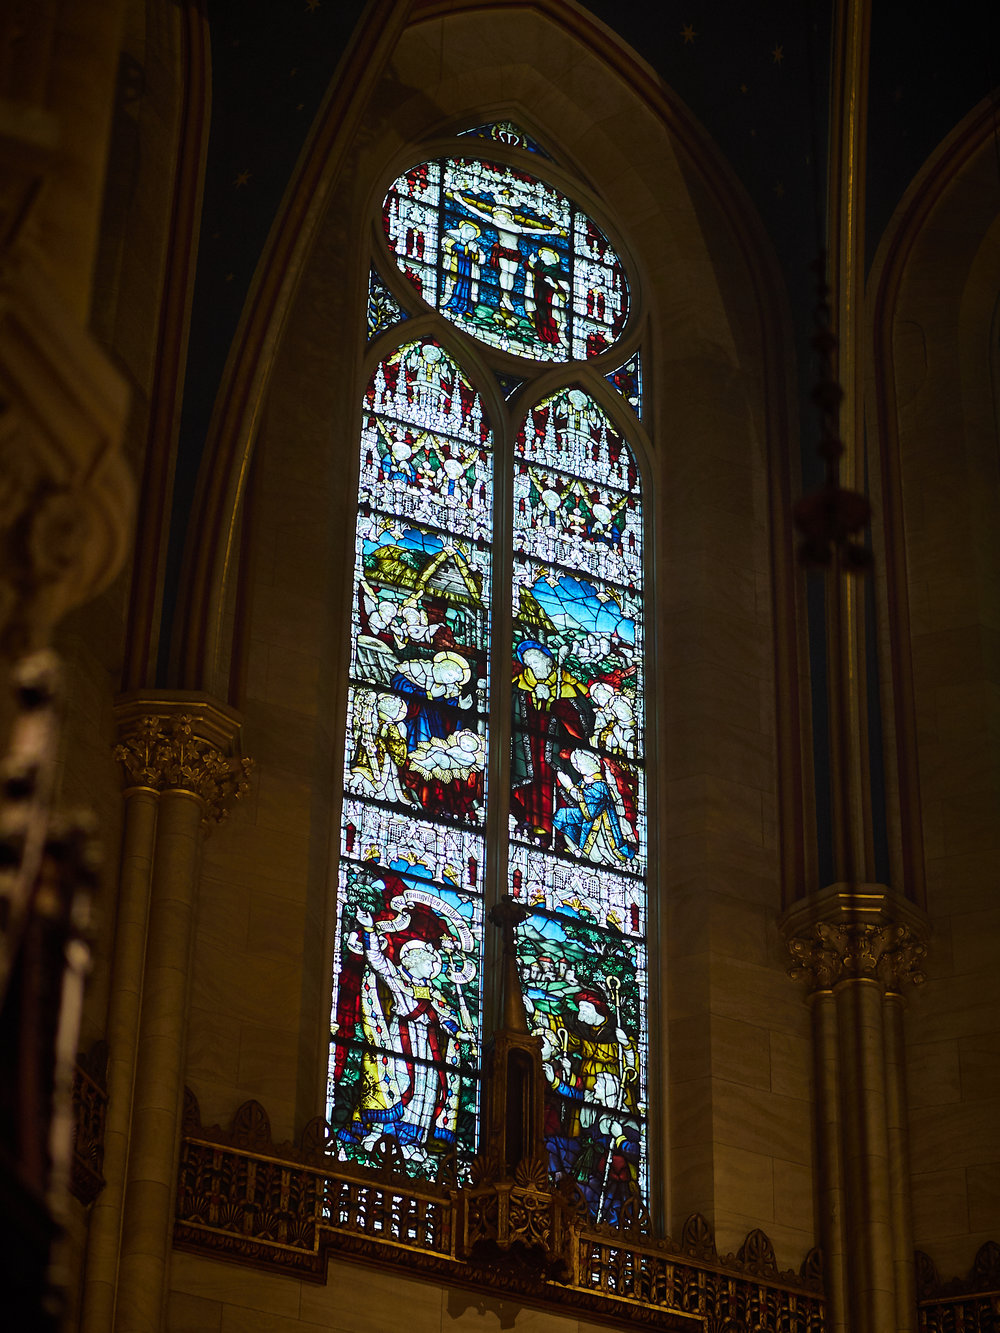 Central double-lancet window in apse: Roundel at top: The Crucifixion; Center: Adoration of the Shepherds; Bottom: Angel Appears to Shepherds  Photo by Ricardo Gomez